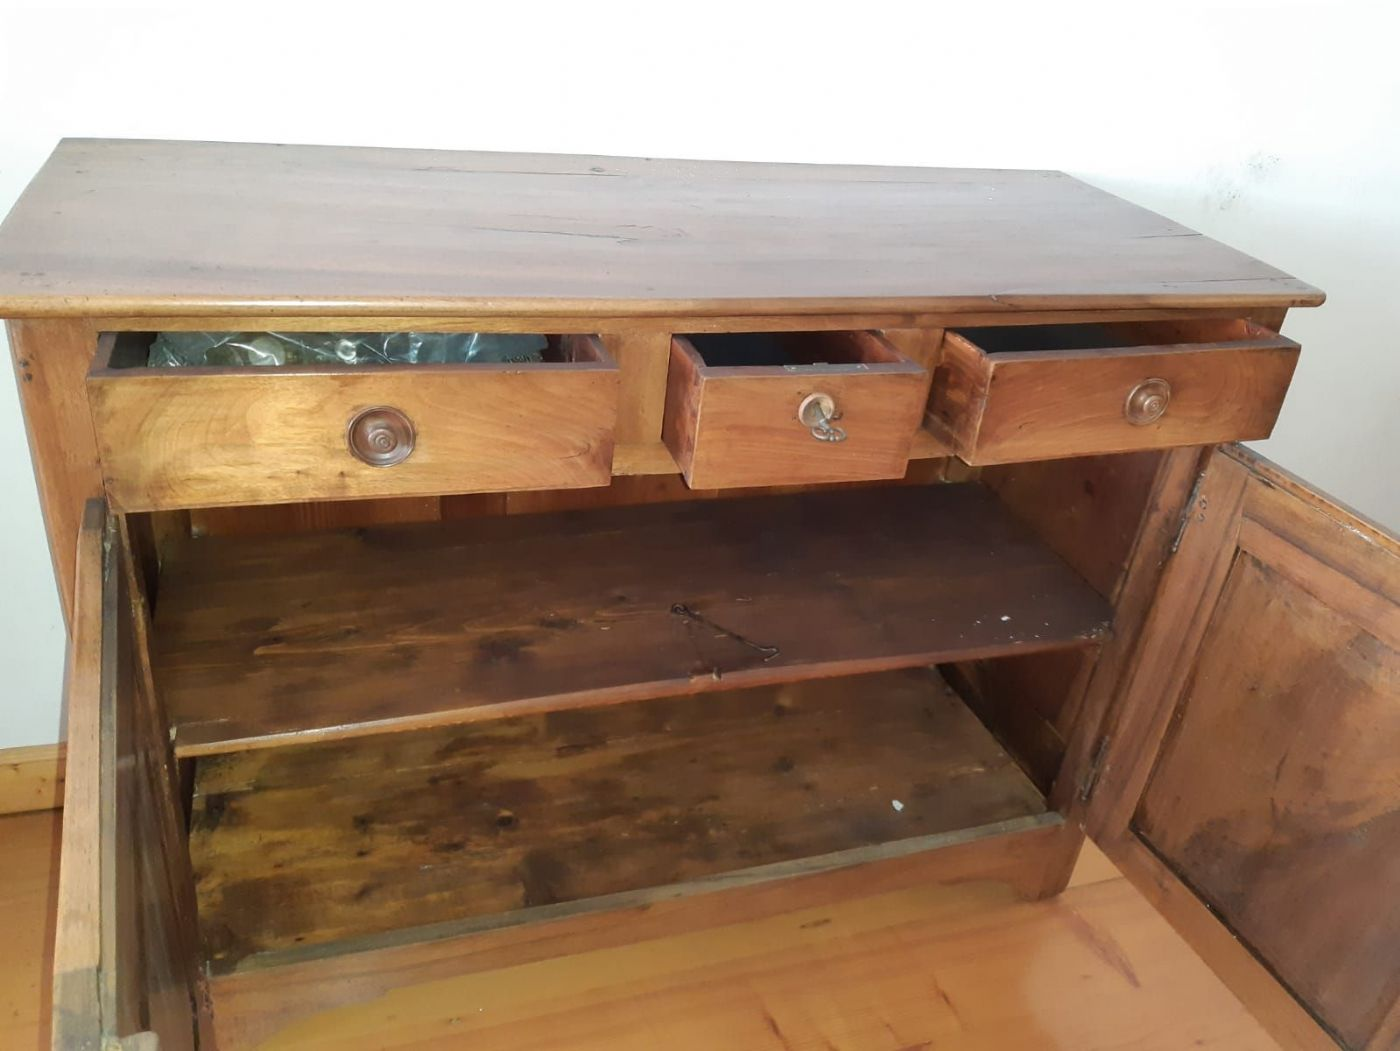 thumb2|credenza a due ante